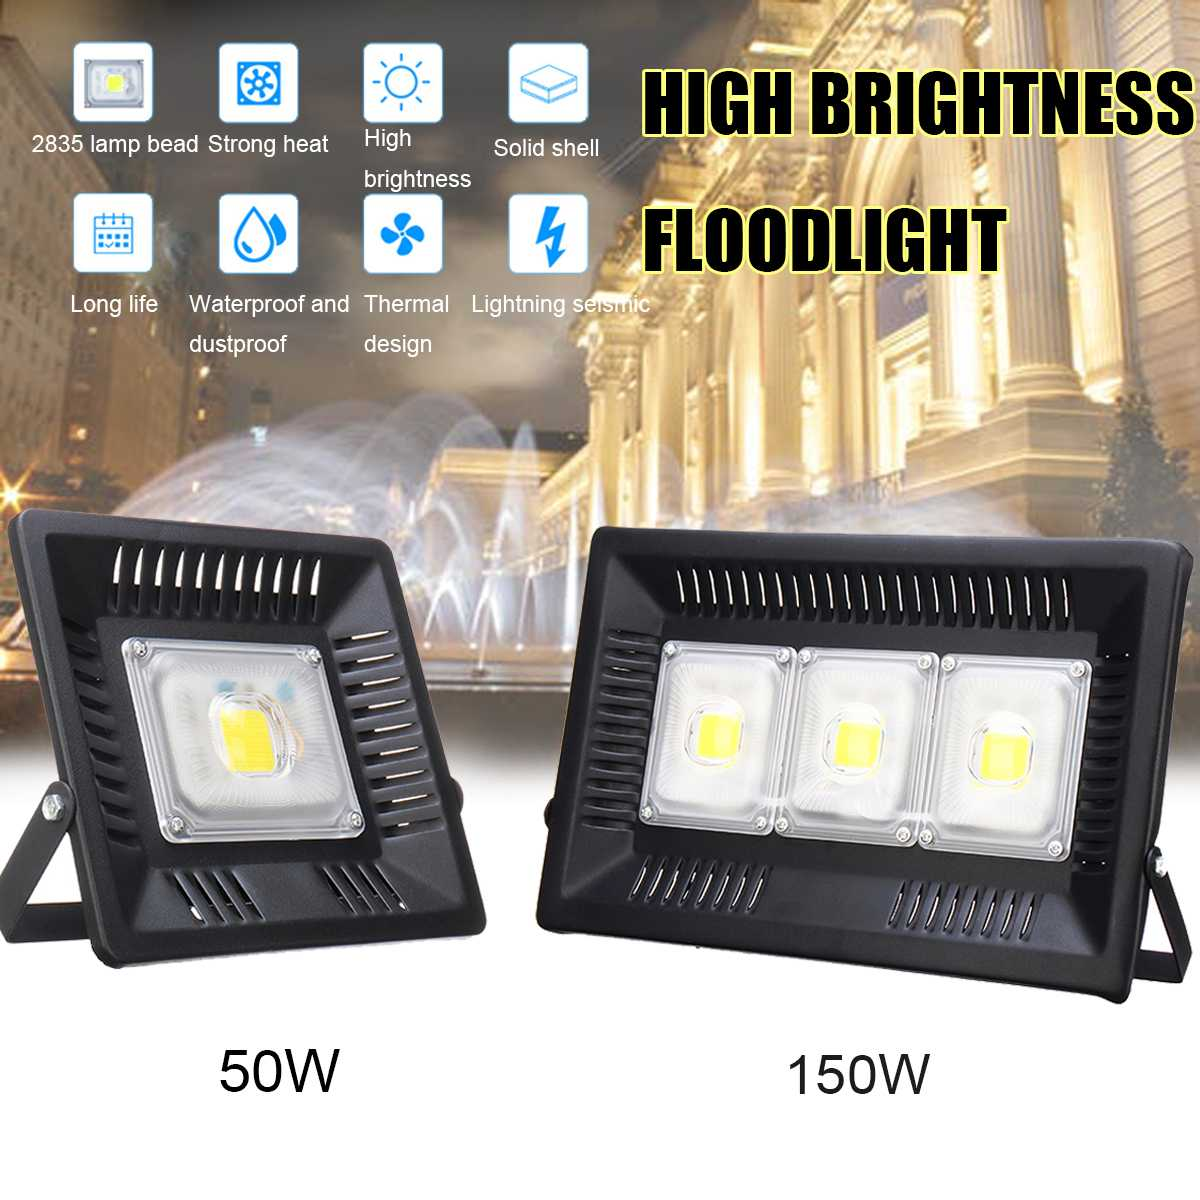 Lights & Lighting Collection Here 50/150w Outdoor Street Floodlights 108pcs 2835lamp Bead Led Flood Light Lighting Wall Reflector Waterproof Ip66 Path Spotlight Bright And Translucent In Appearance